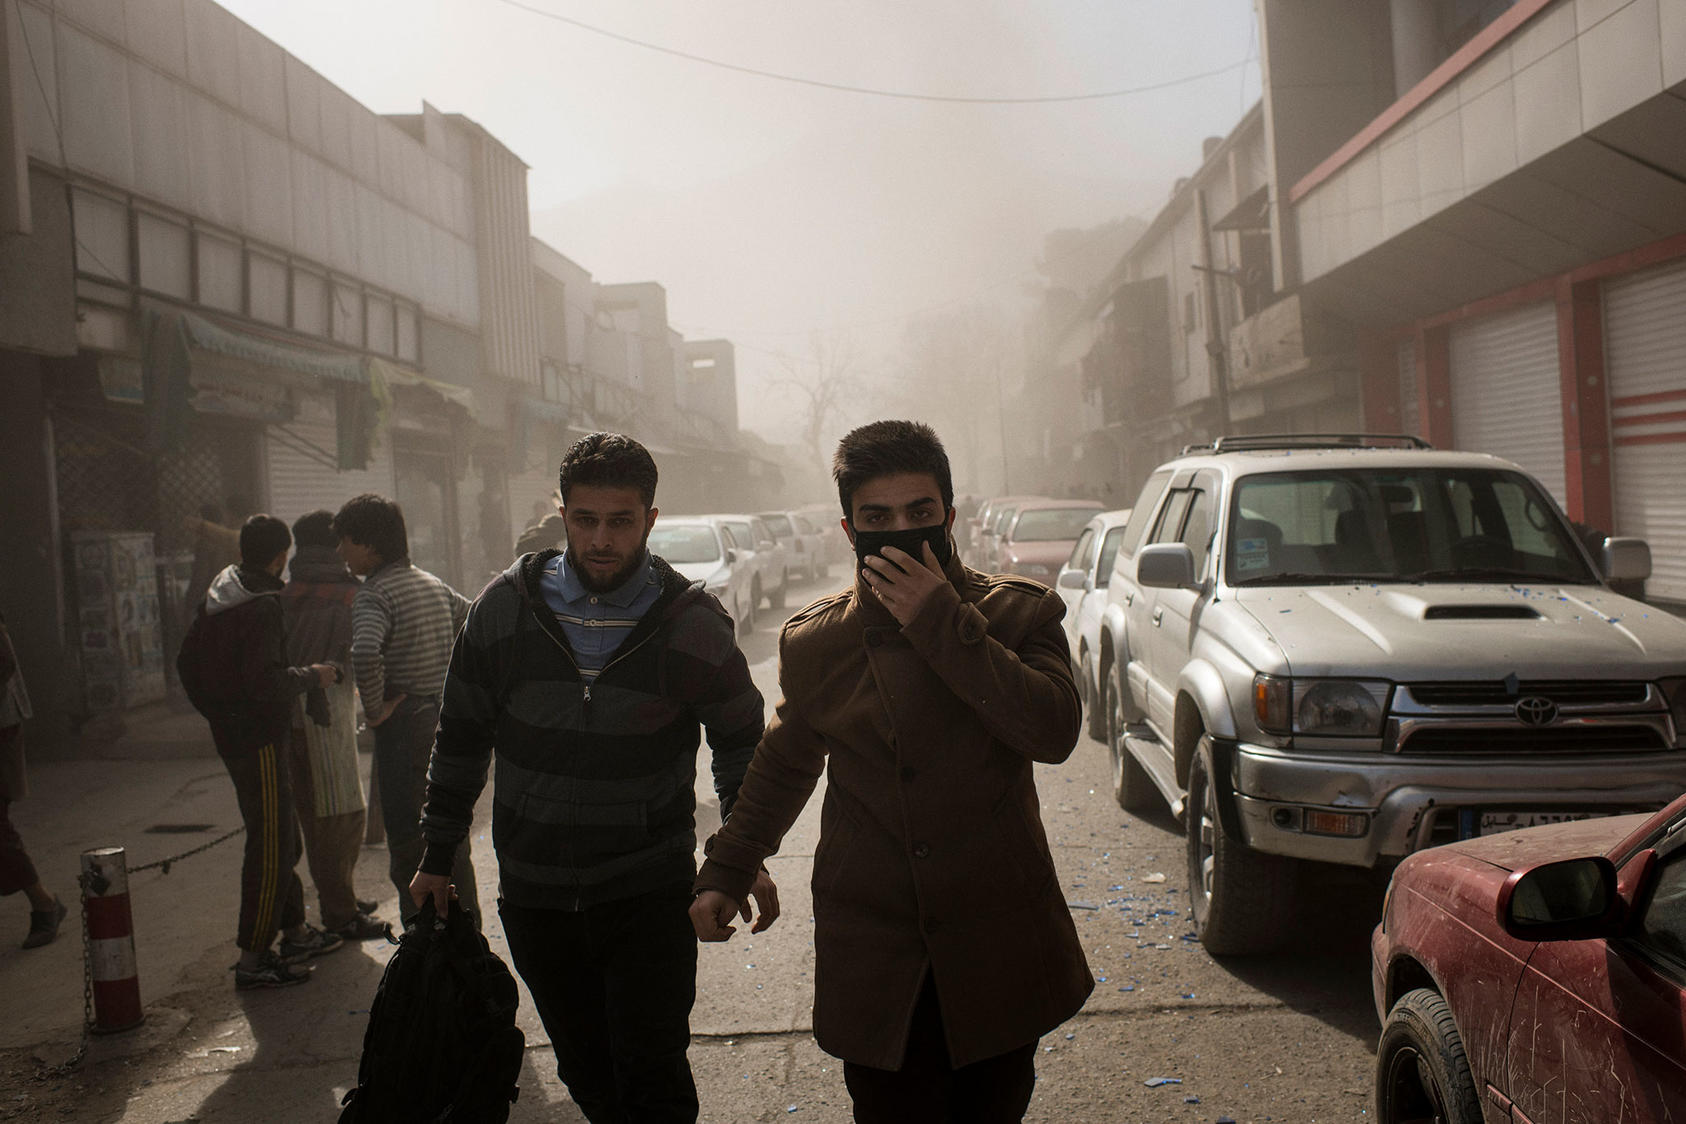 Smoke hangs in the air near the site of a bombing in Kabul, Afghanistan that killed at least 95 people, Jan. 27, 2018